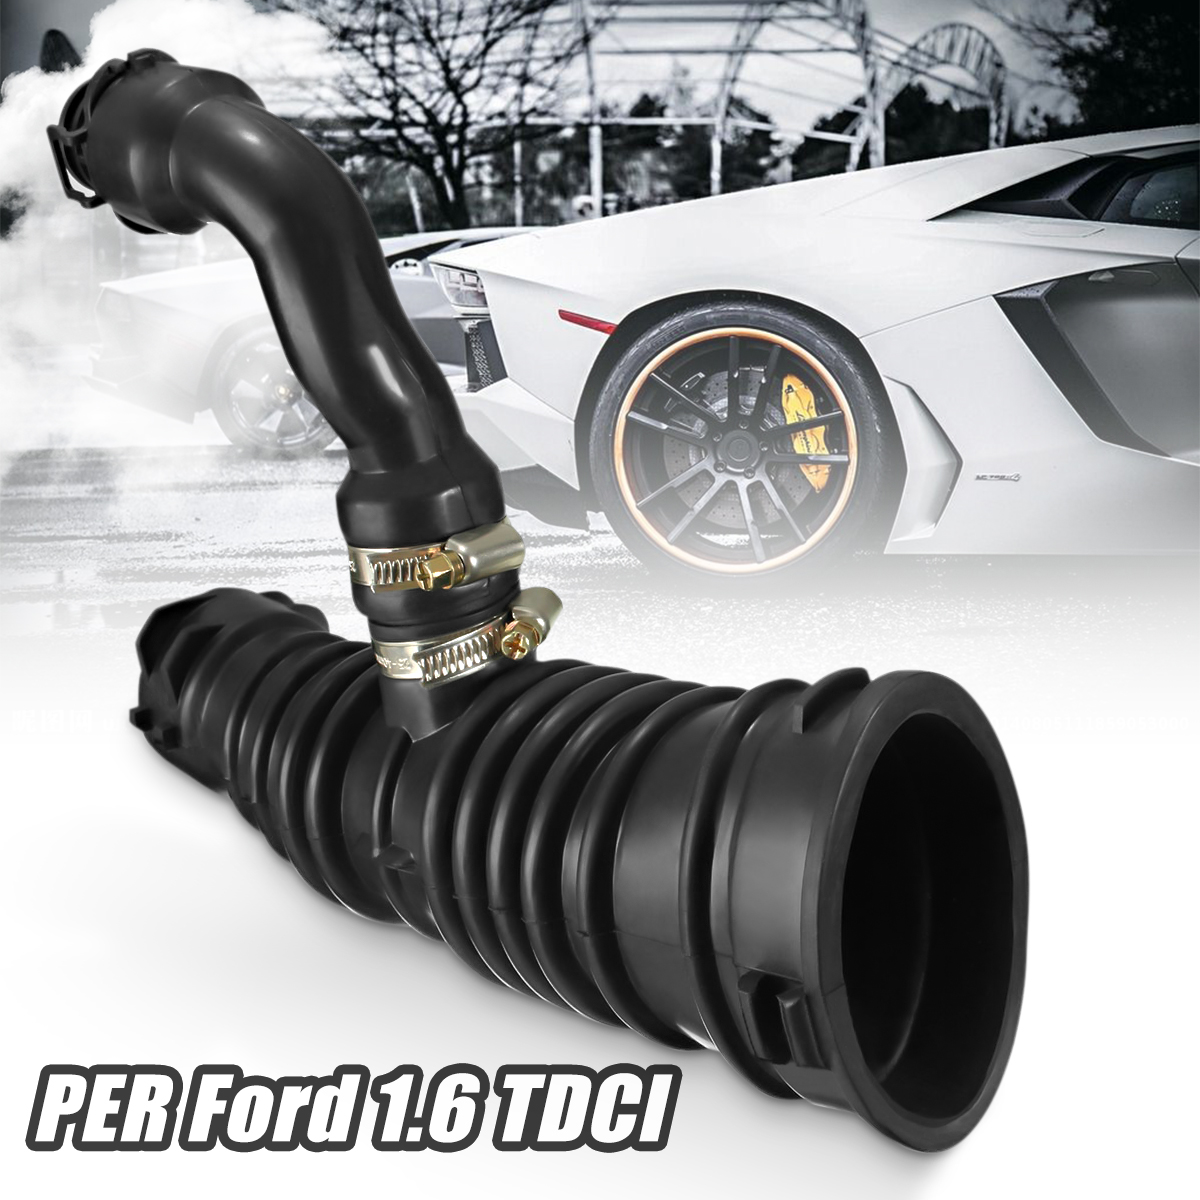 New TDCI AIR FILTER INTAKE HOSE FLOW PIPE 1336611 3M519A673MG For FORD For FOCUS For C-MAX 1.6